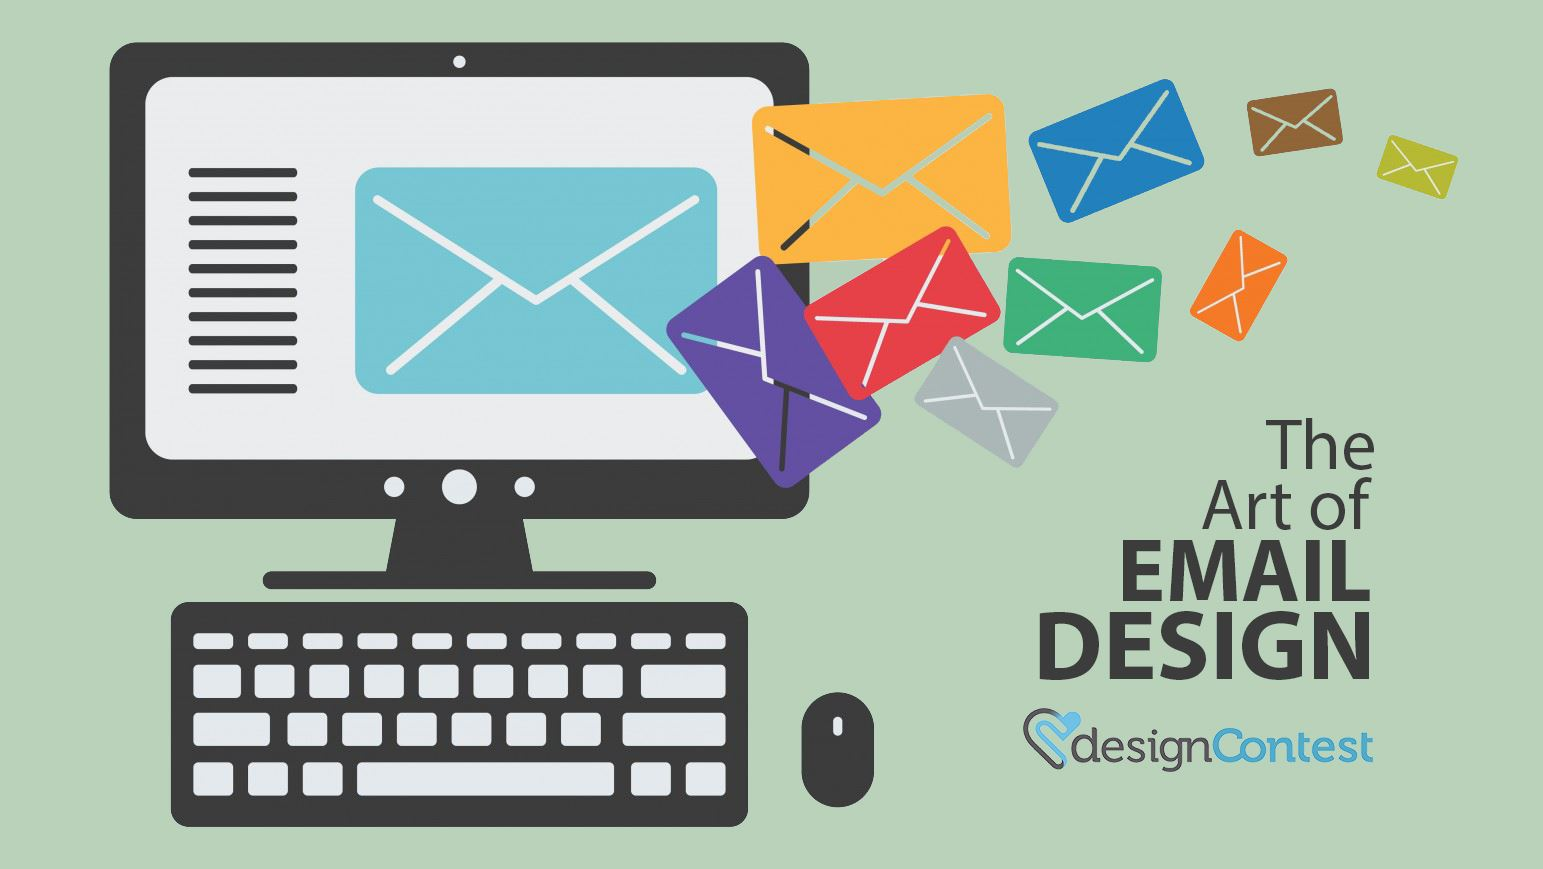 The Art of Email Design